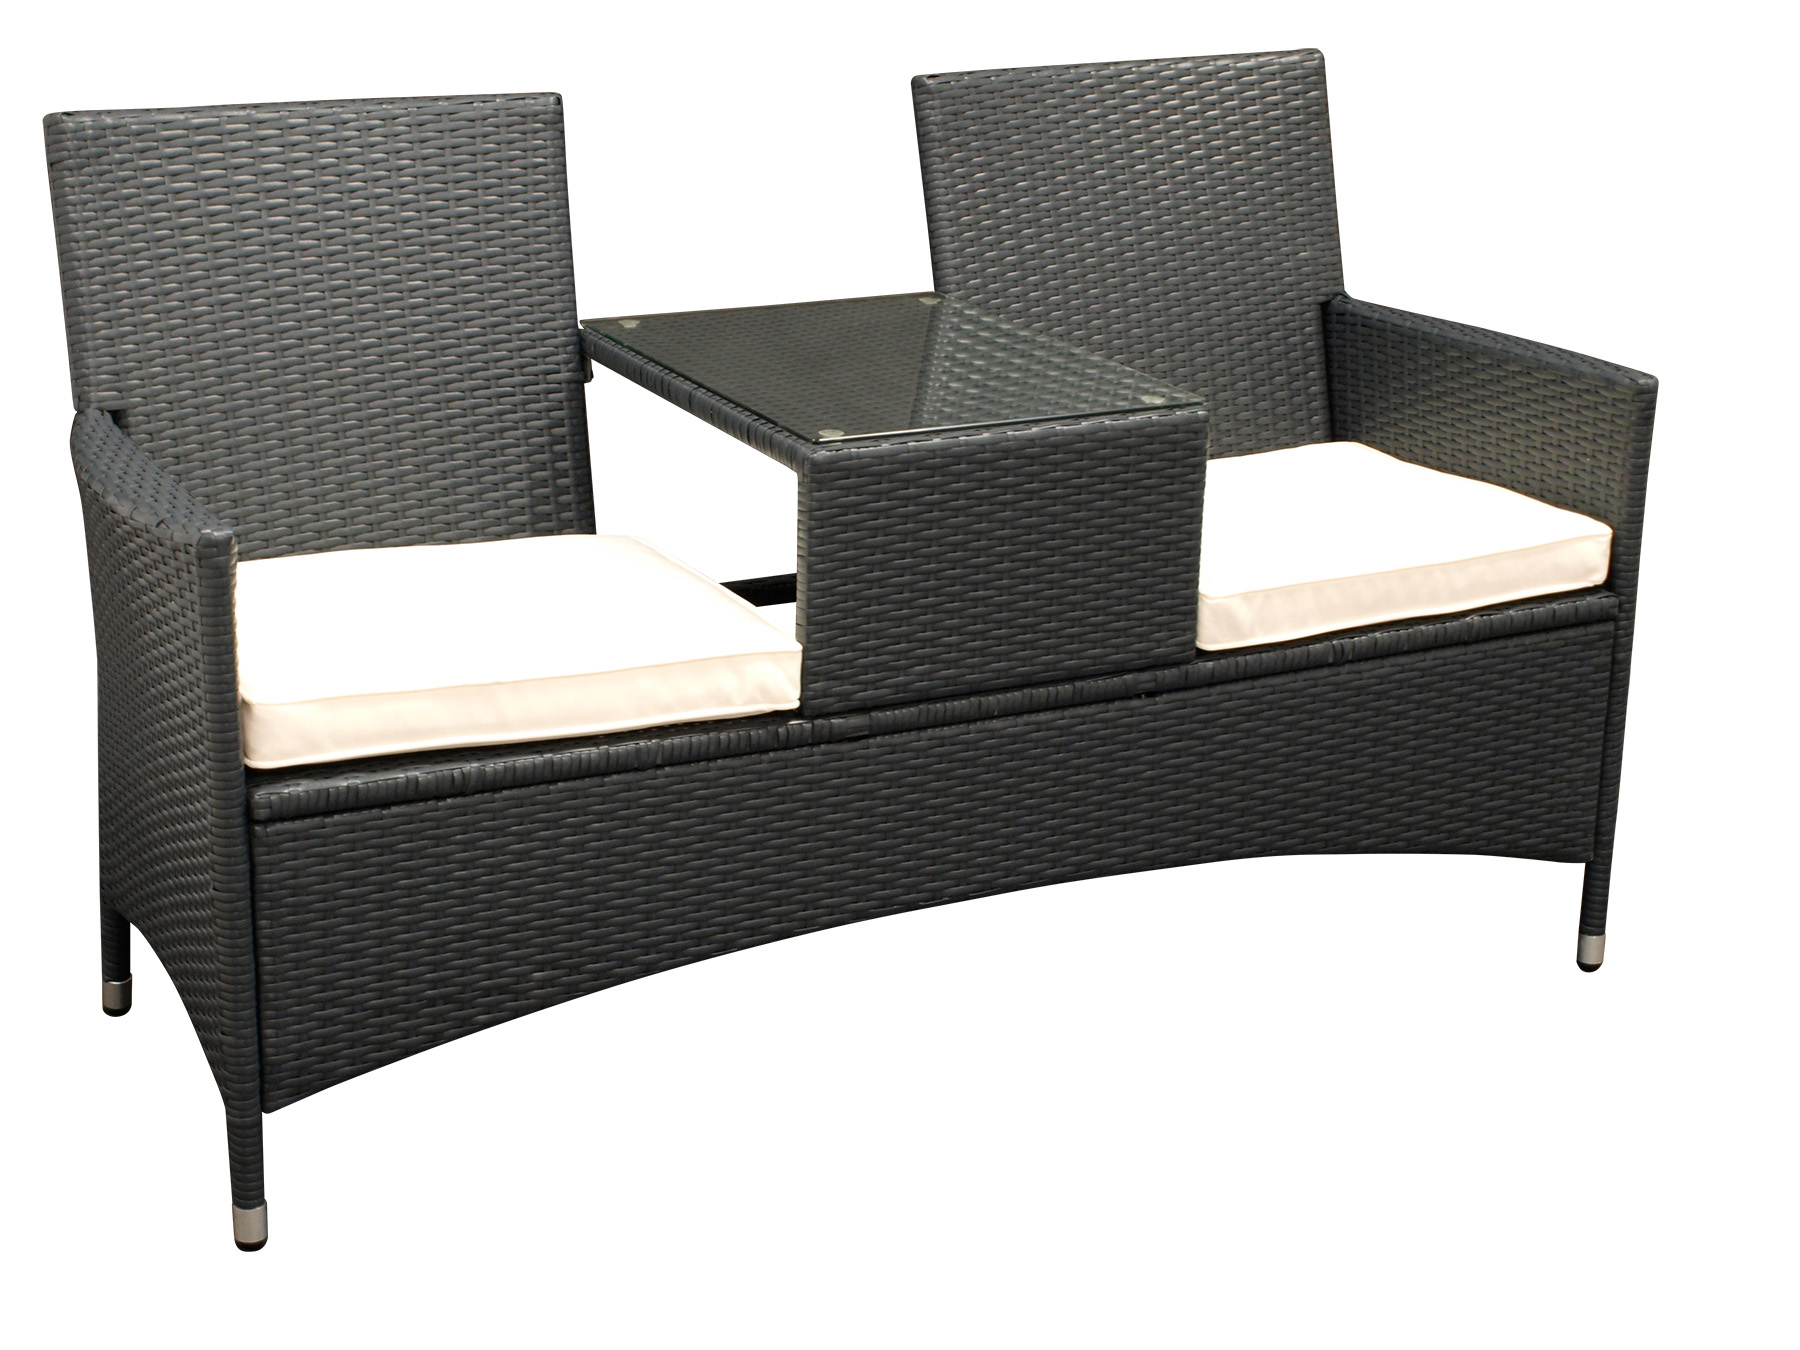 gartenbank rattanbank mit tisch gartenm bel bank san vincenzo rattan grau ebay. Black Bedroom Furniture Sets. Home Design Ideas